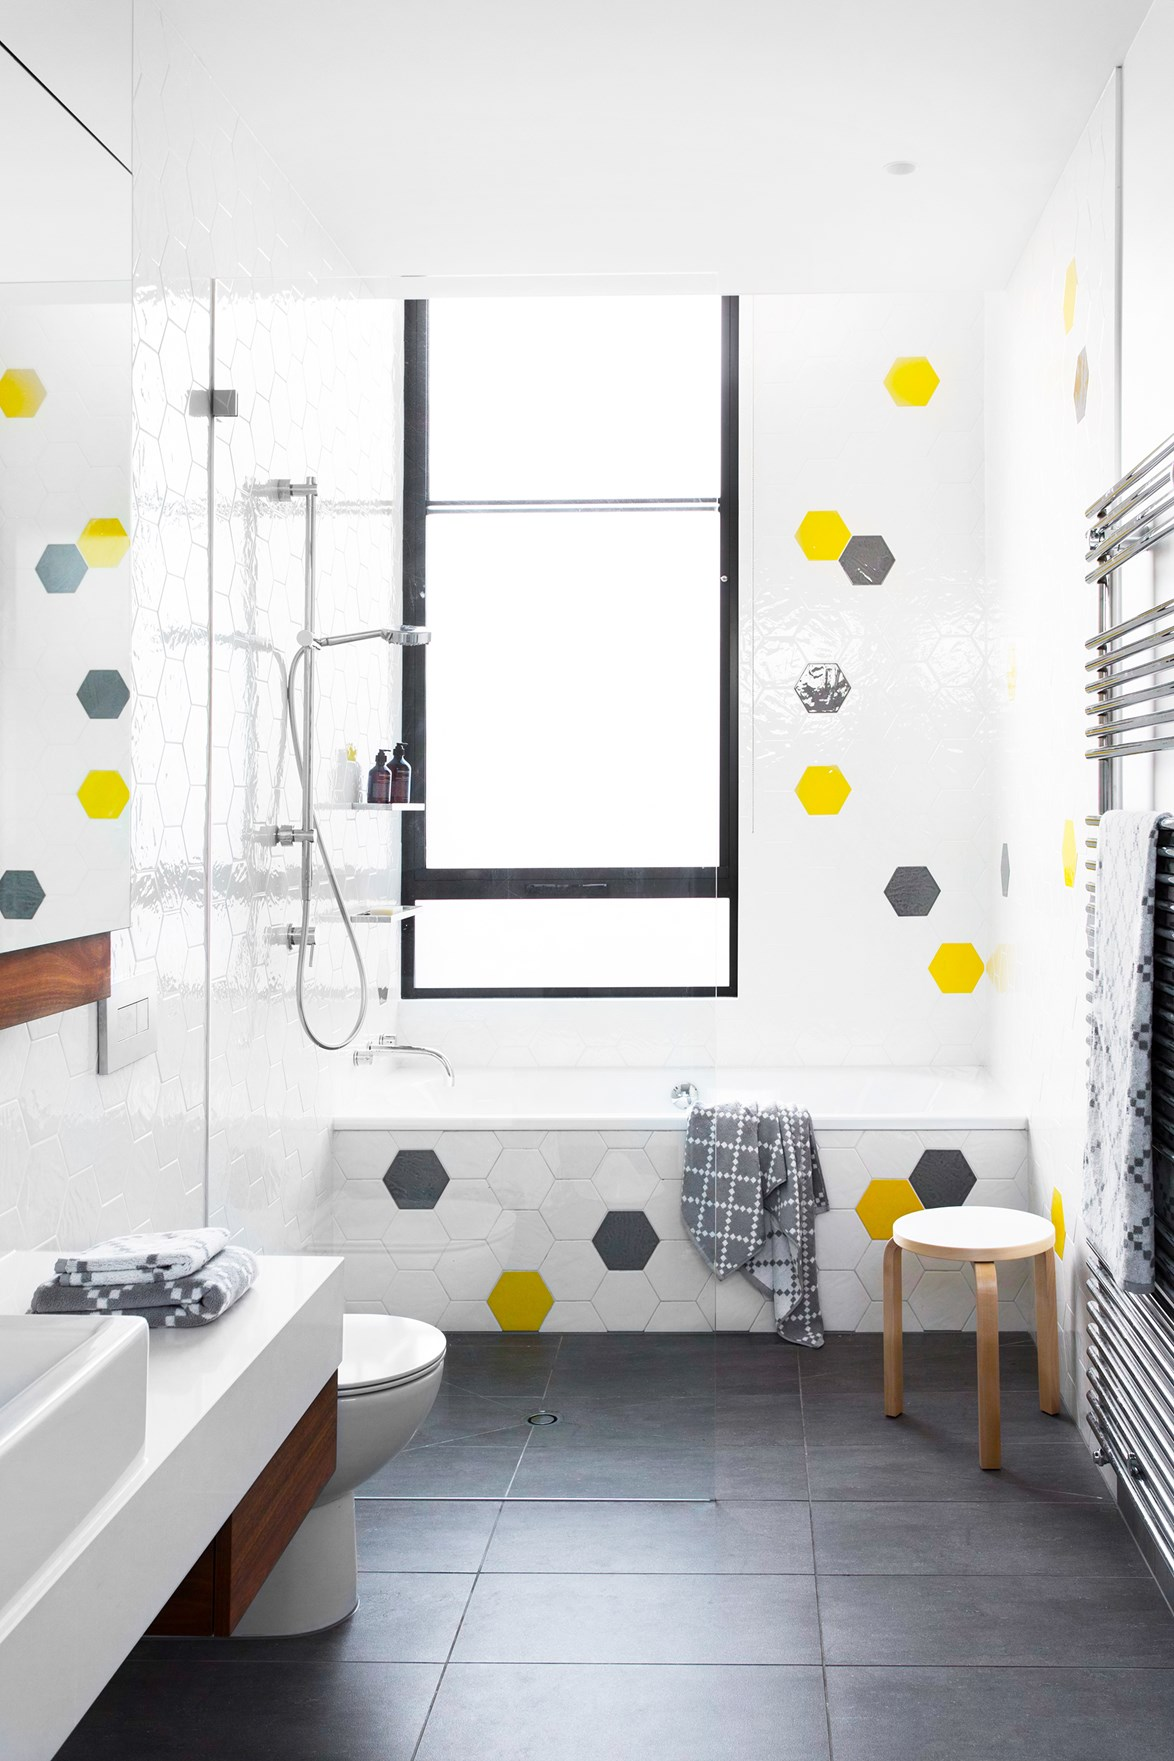 "When it came to building a home that would grow with his family, [comedian Dave Hughes](https://www.homestolove.com.au/gallery-funny-side-up-dave-hughes-2659|target=""_blank"") chose a bathroom that maximises light and space. Statement hexagonal tiles are the hero-piece, while the built-in tub takes a backseat. *Photo: Martina Gemmola / Styling: Toni Briggs / Story: Australian House & Garden*"